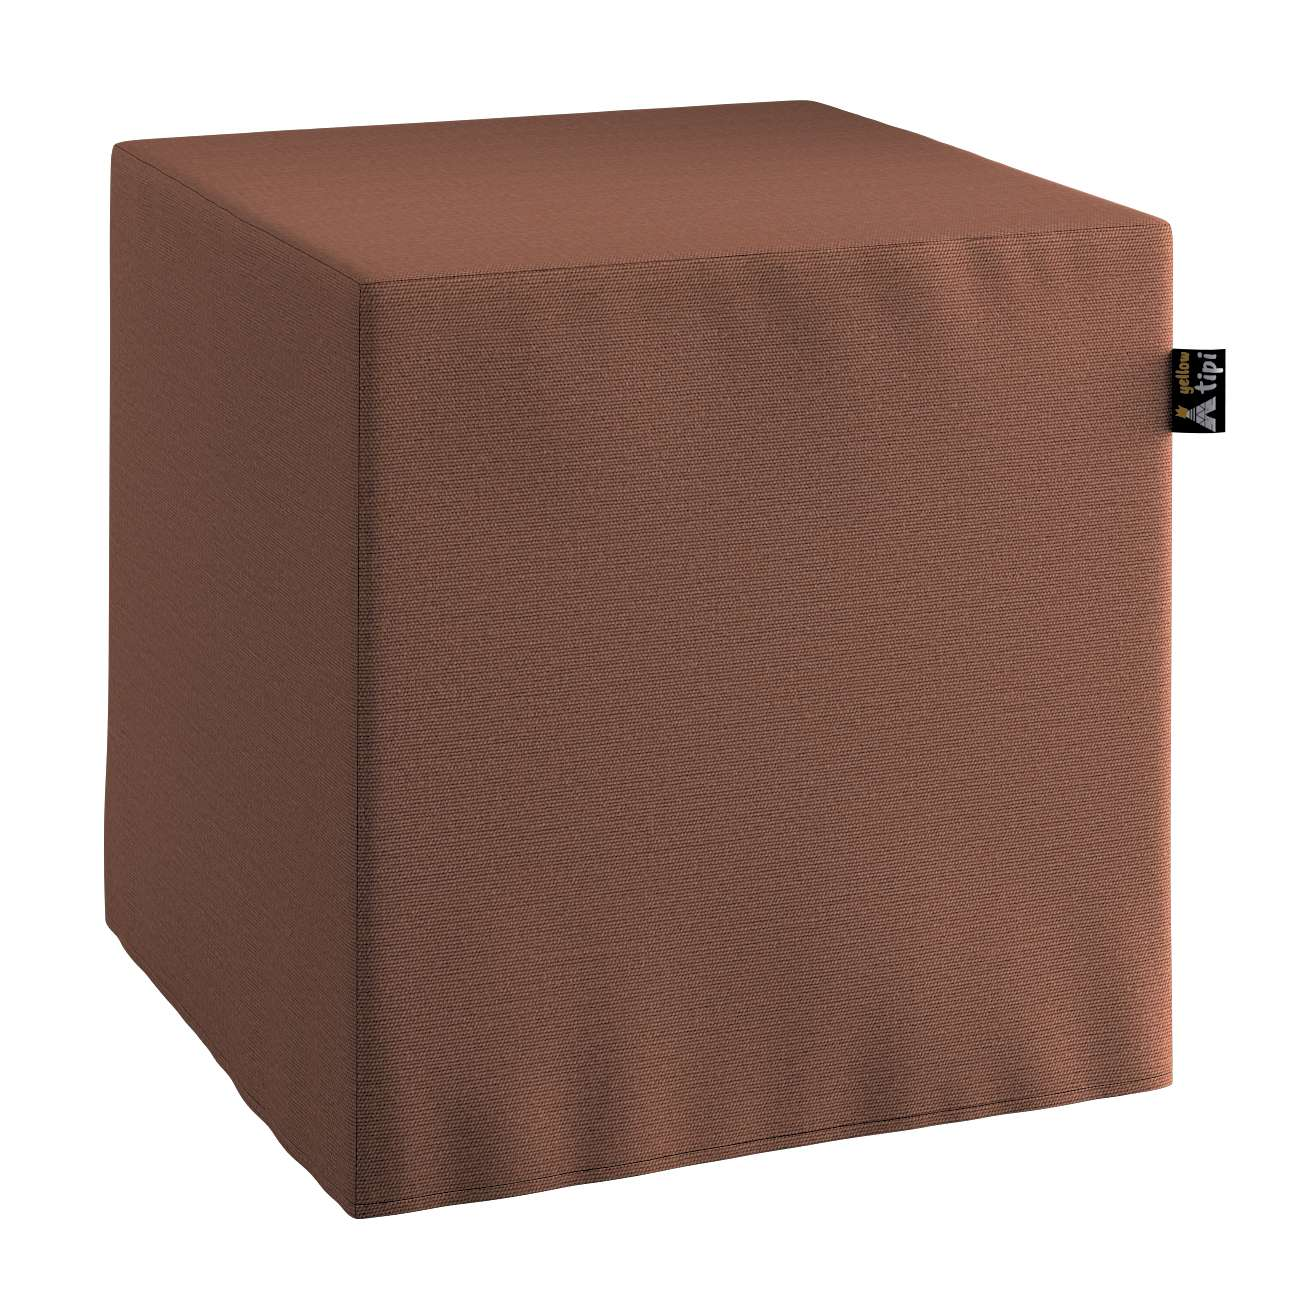 Nano cube pouf in collection Happiness, fabric: 133-09